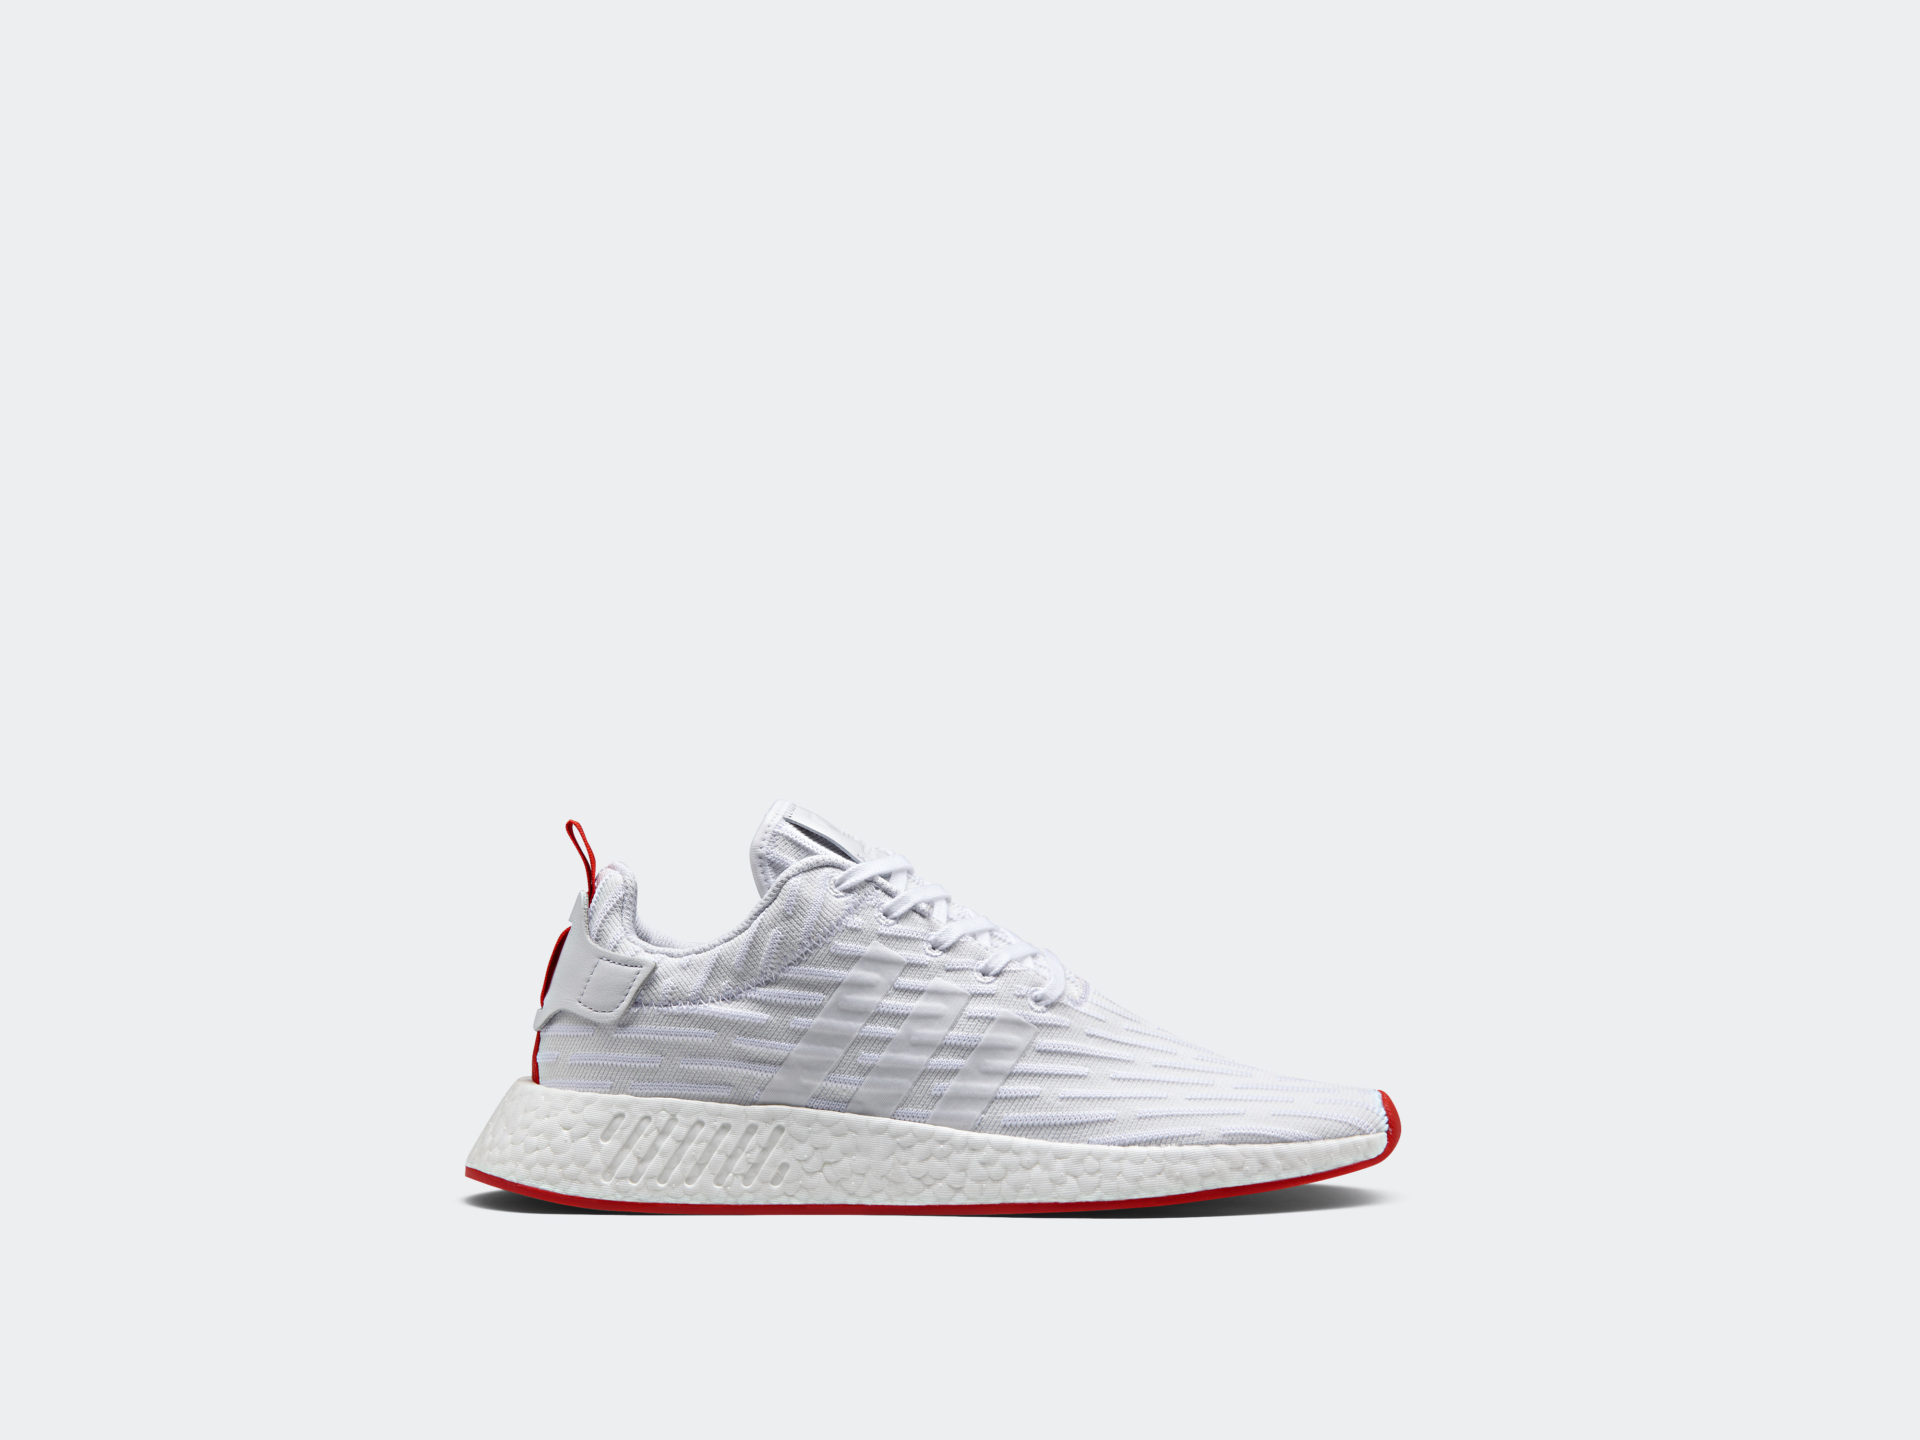 Adidas Nmd R2 White Red Drops Early Next Month Nice Kicks